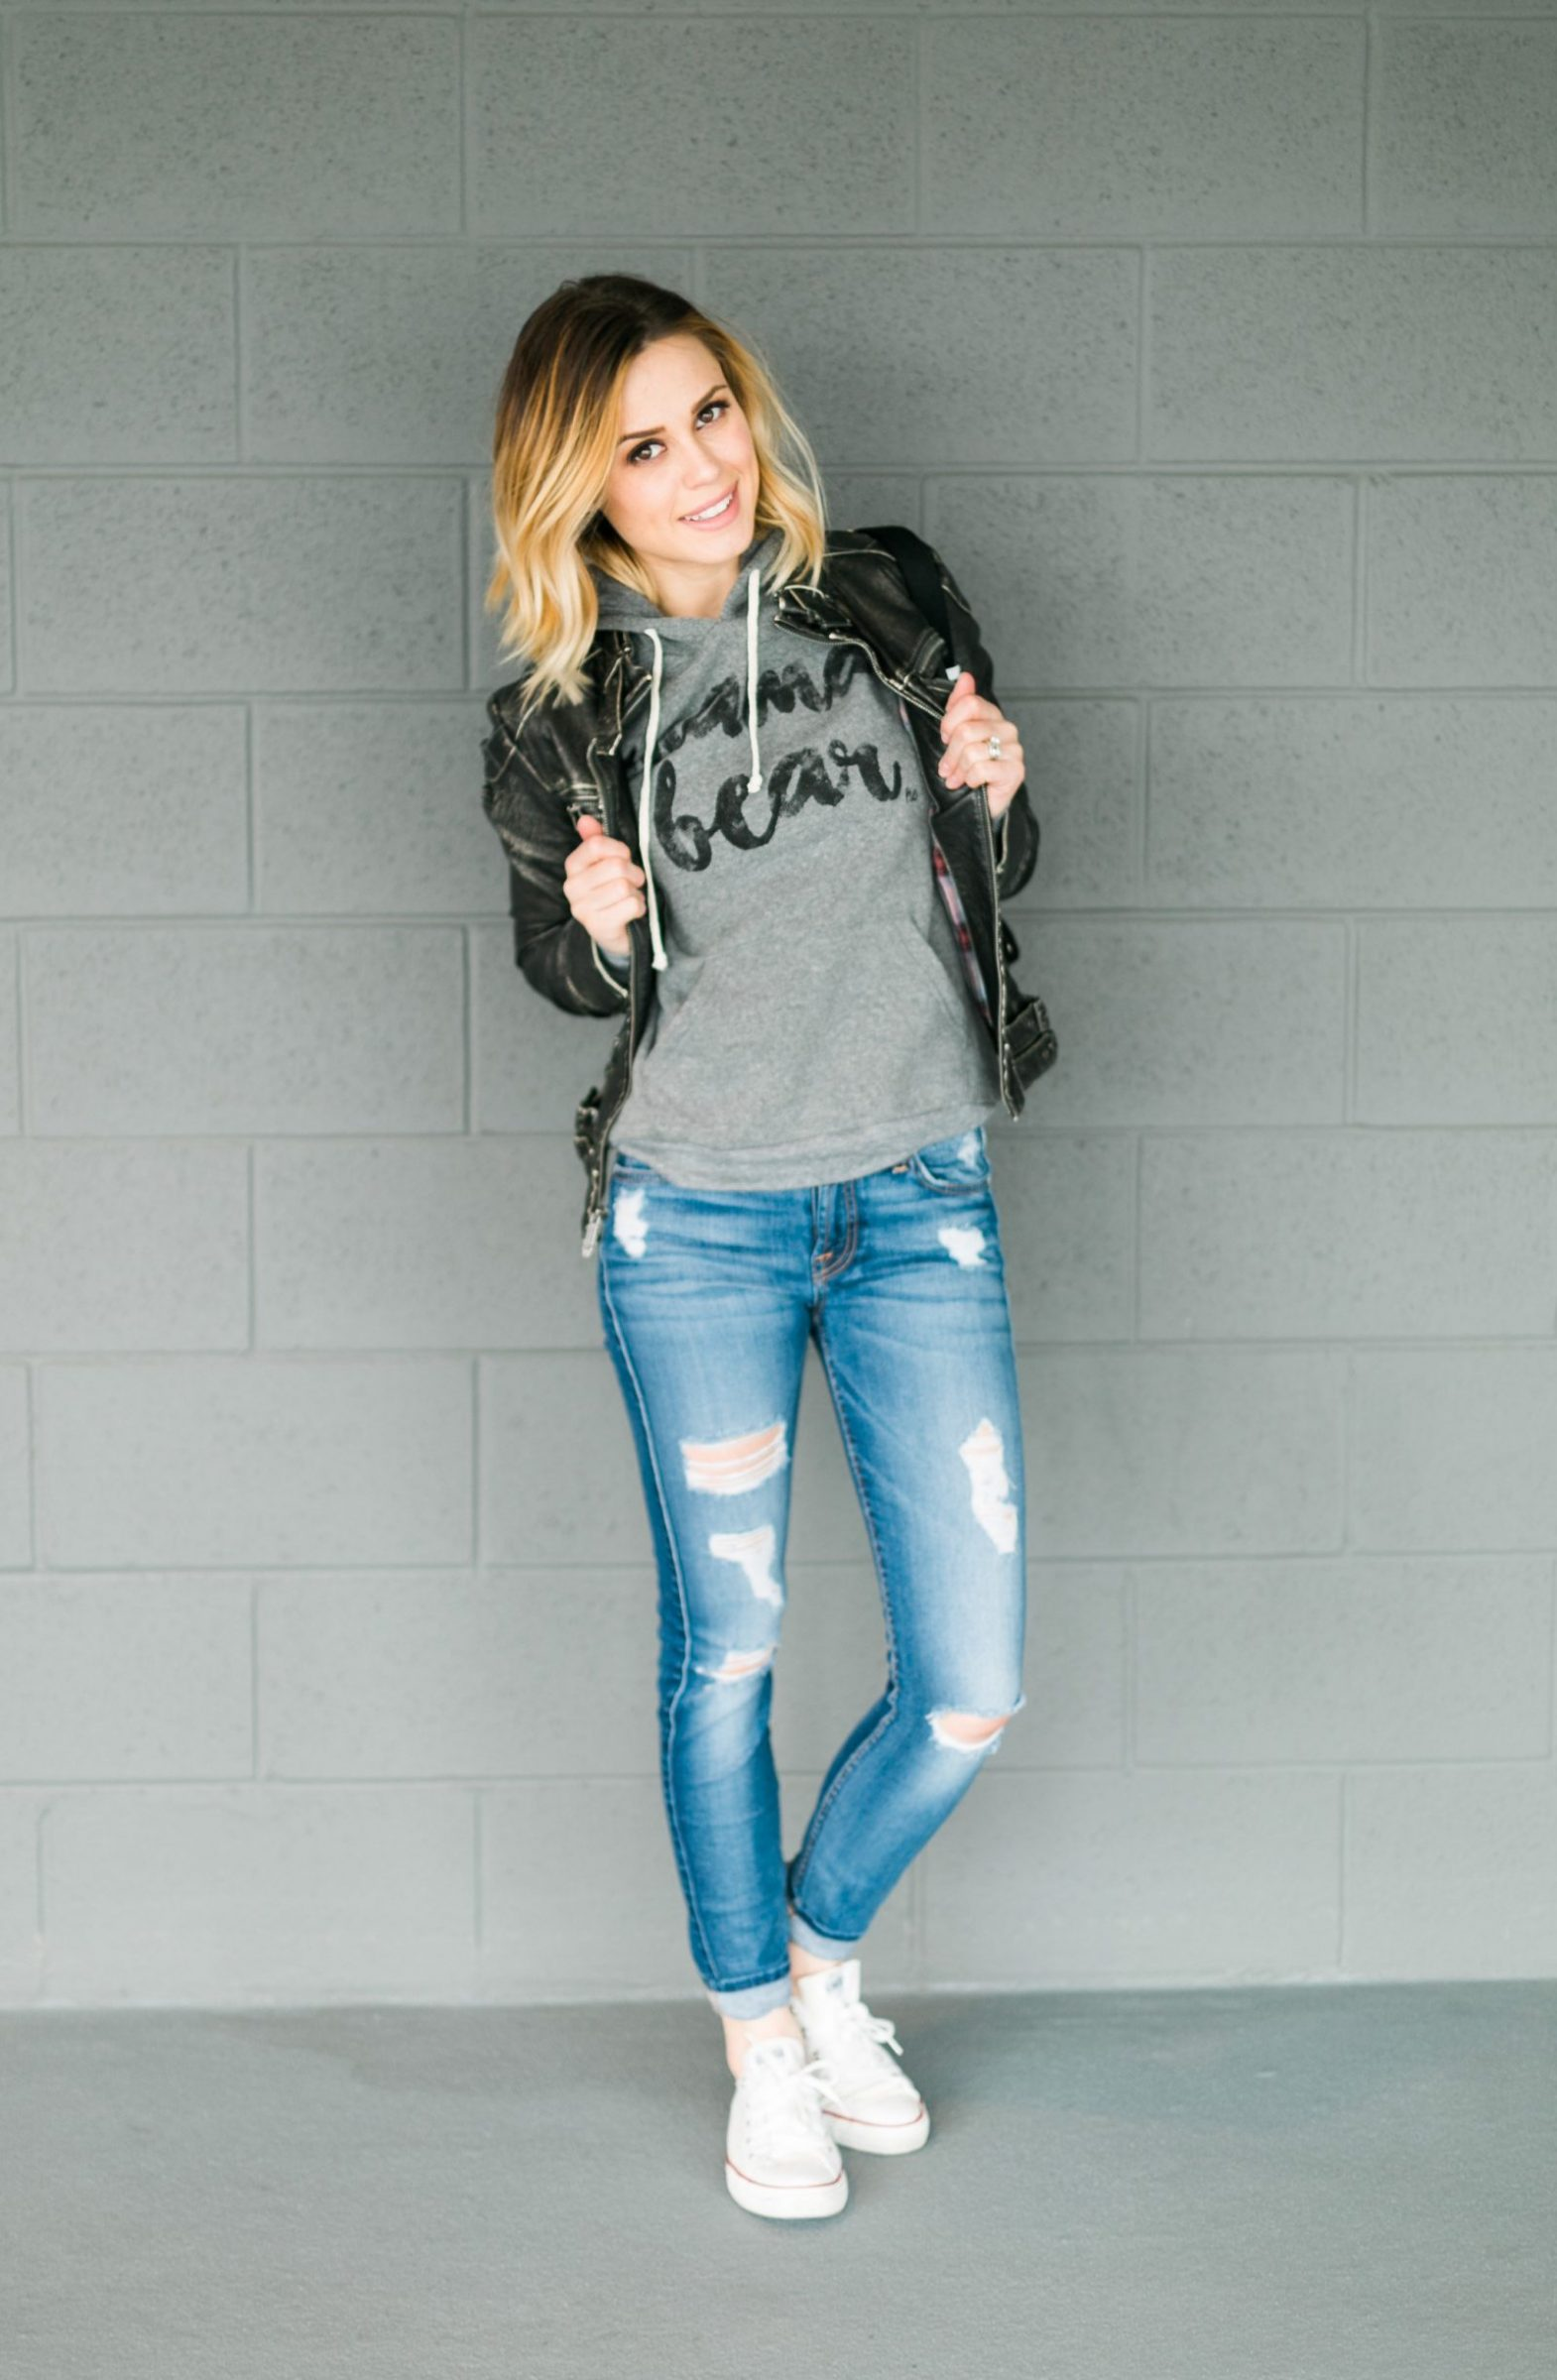 Houston fashion blogger Uptown with Elly Brown wears a casual outfit with chucks